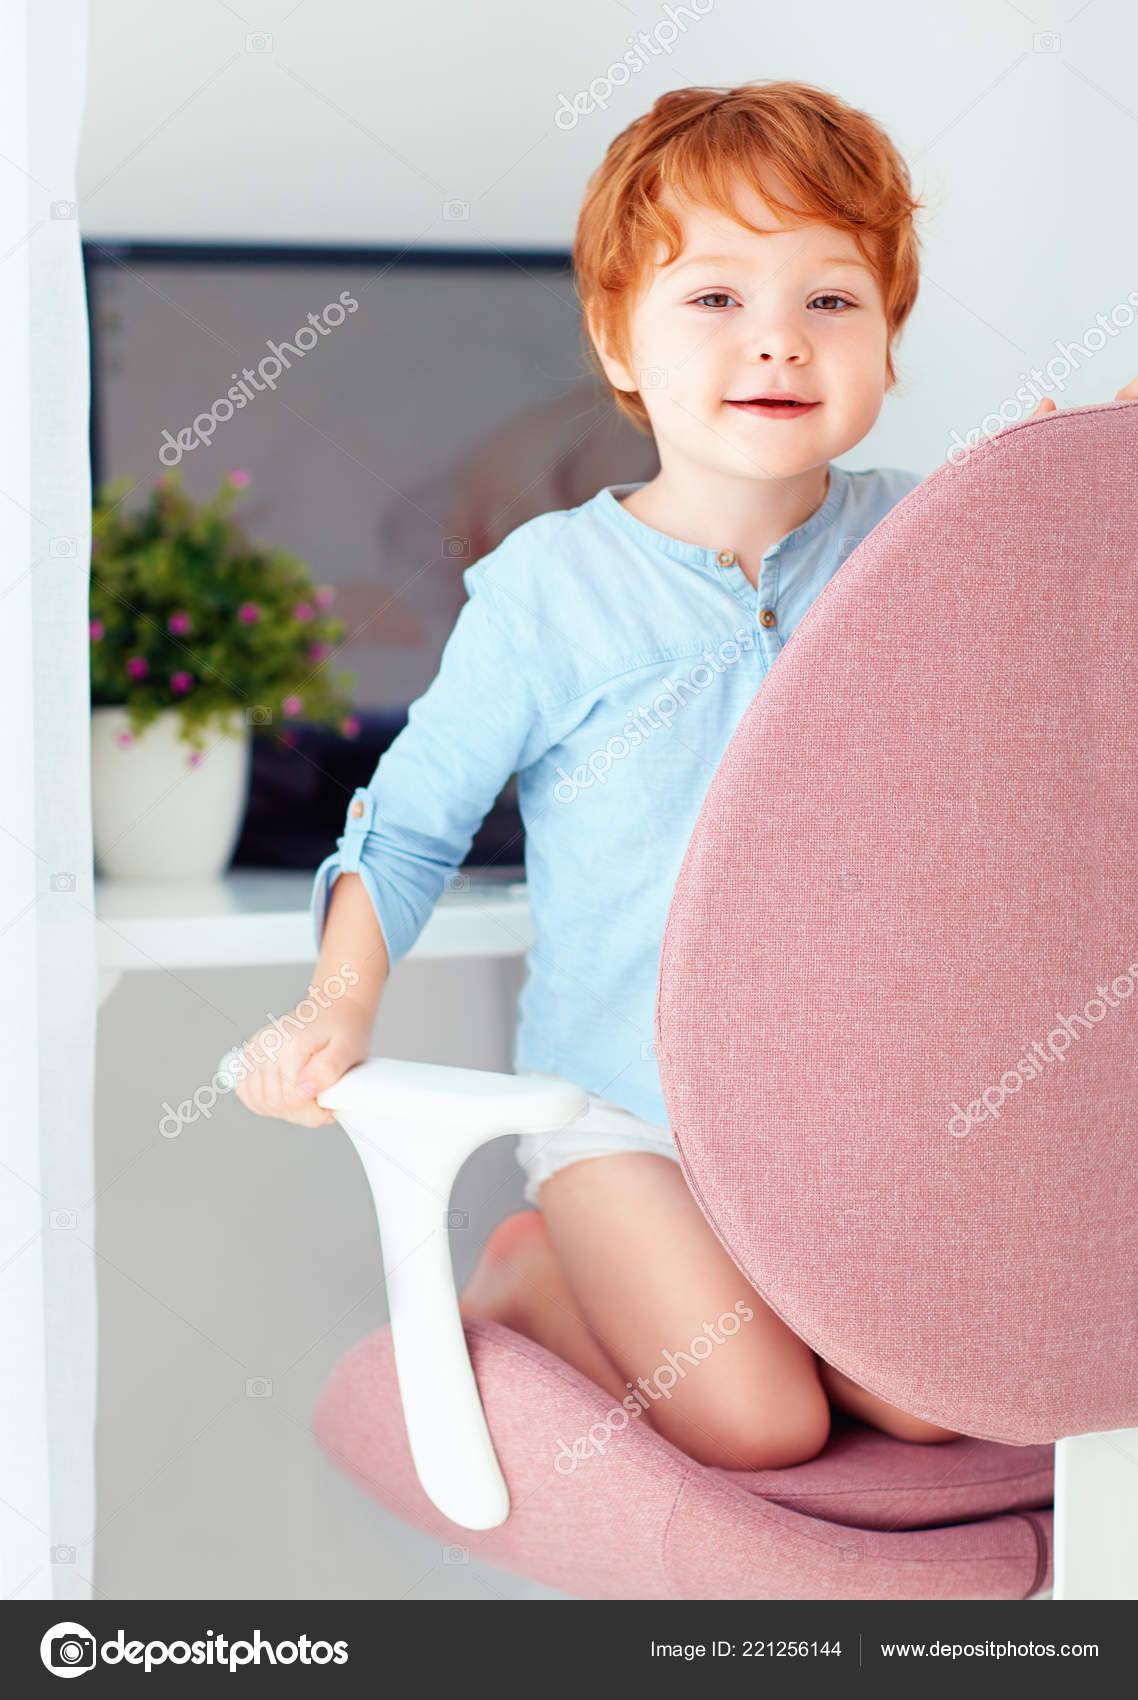 Marvelous Happy Redhead Toddler Baby Boy Sitting Office Chair Working Interior Design Ideas Apansoteloinfo